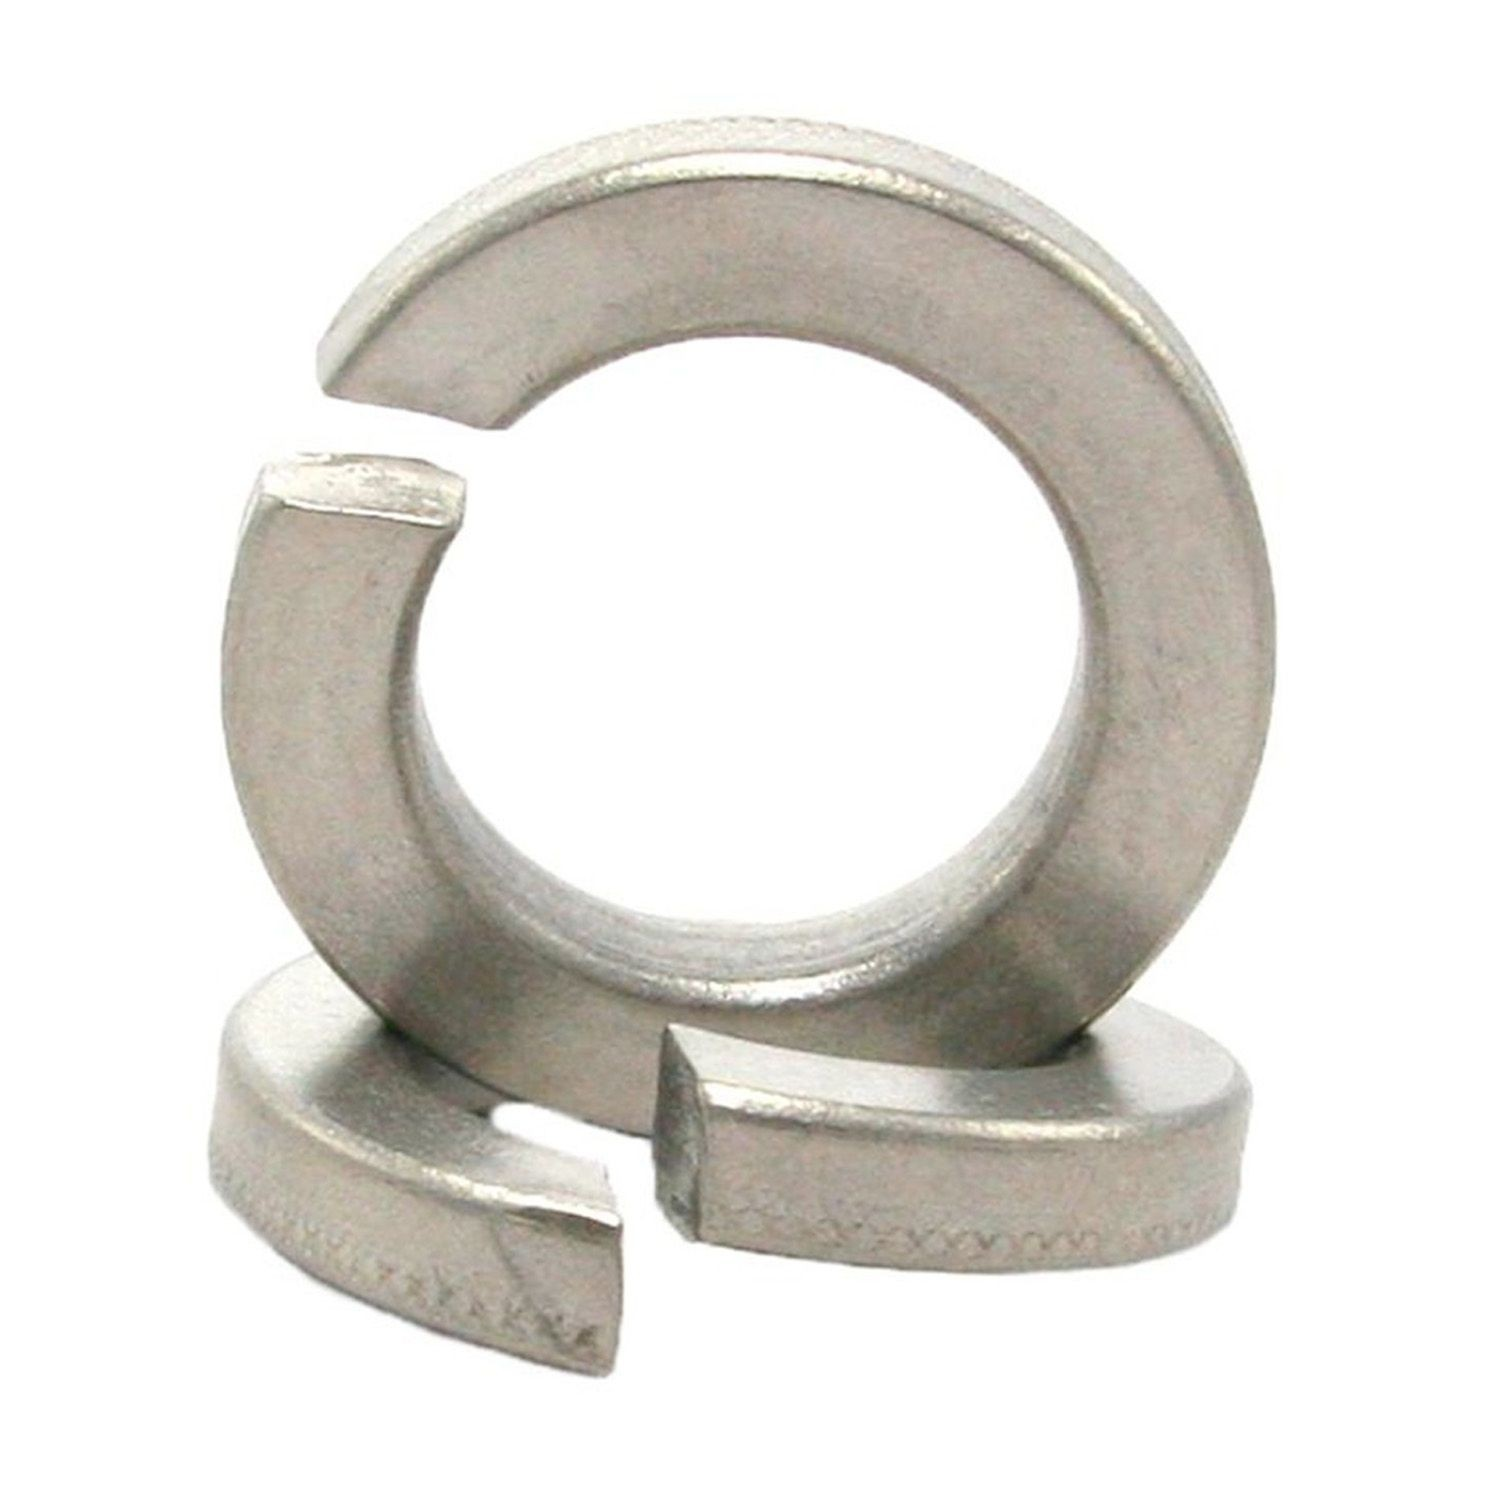 #10 Stainless Steel Split Lock Washer 18-8